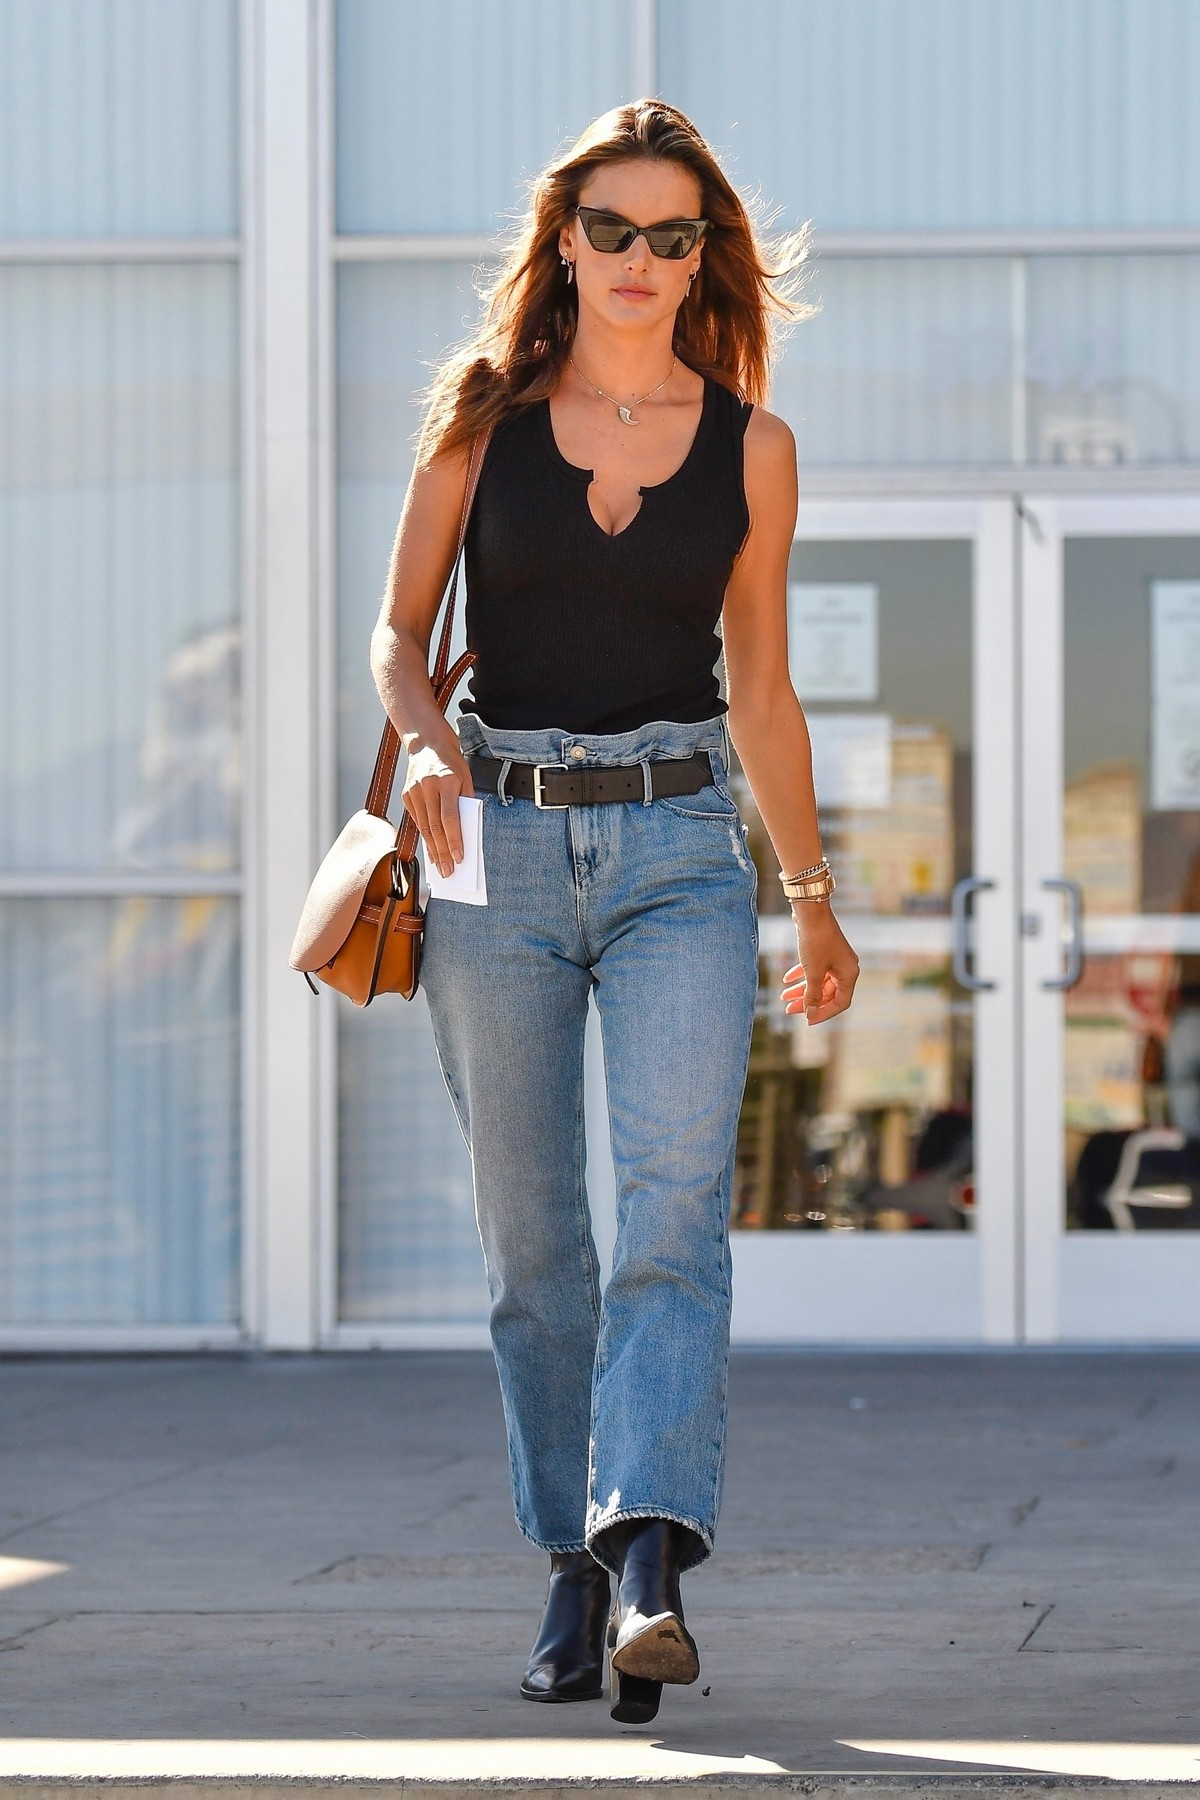 Alessandra Ambrosio in Black Top and Blue Jeans out in Los Angeles 2019/11/18 24